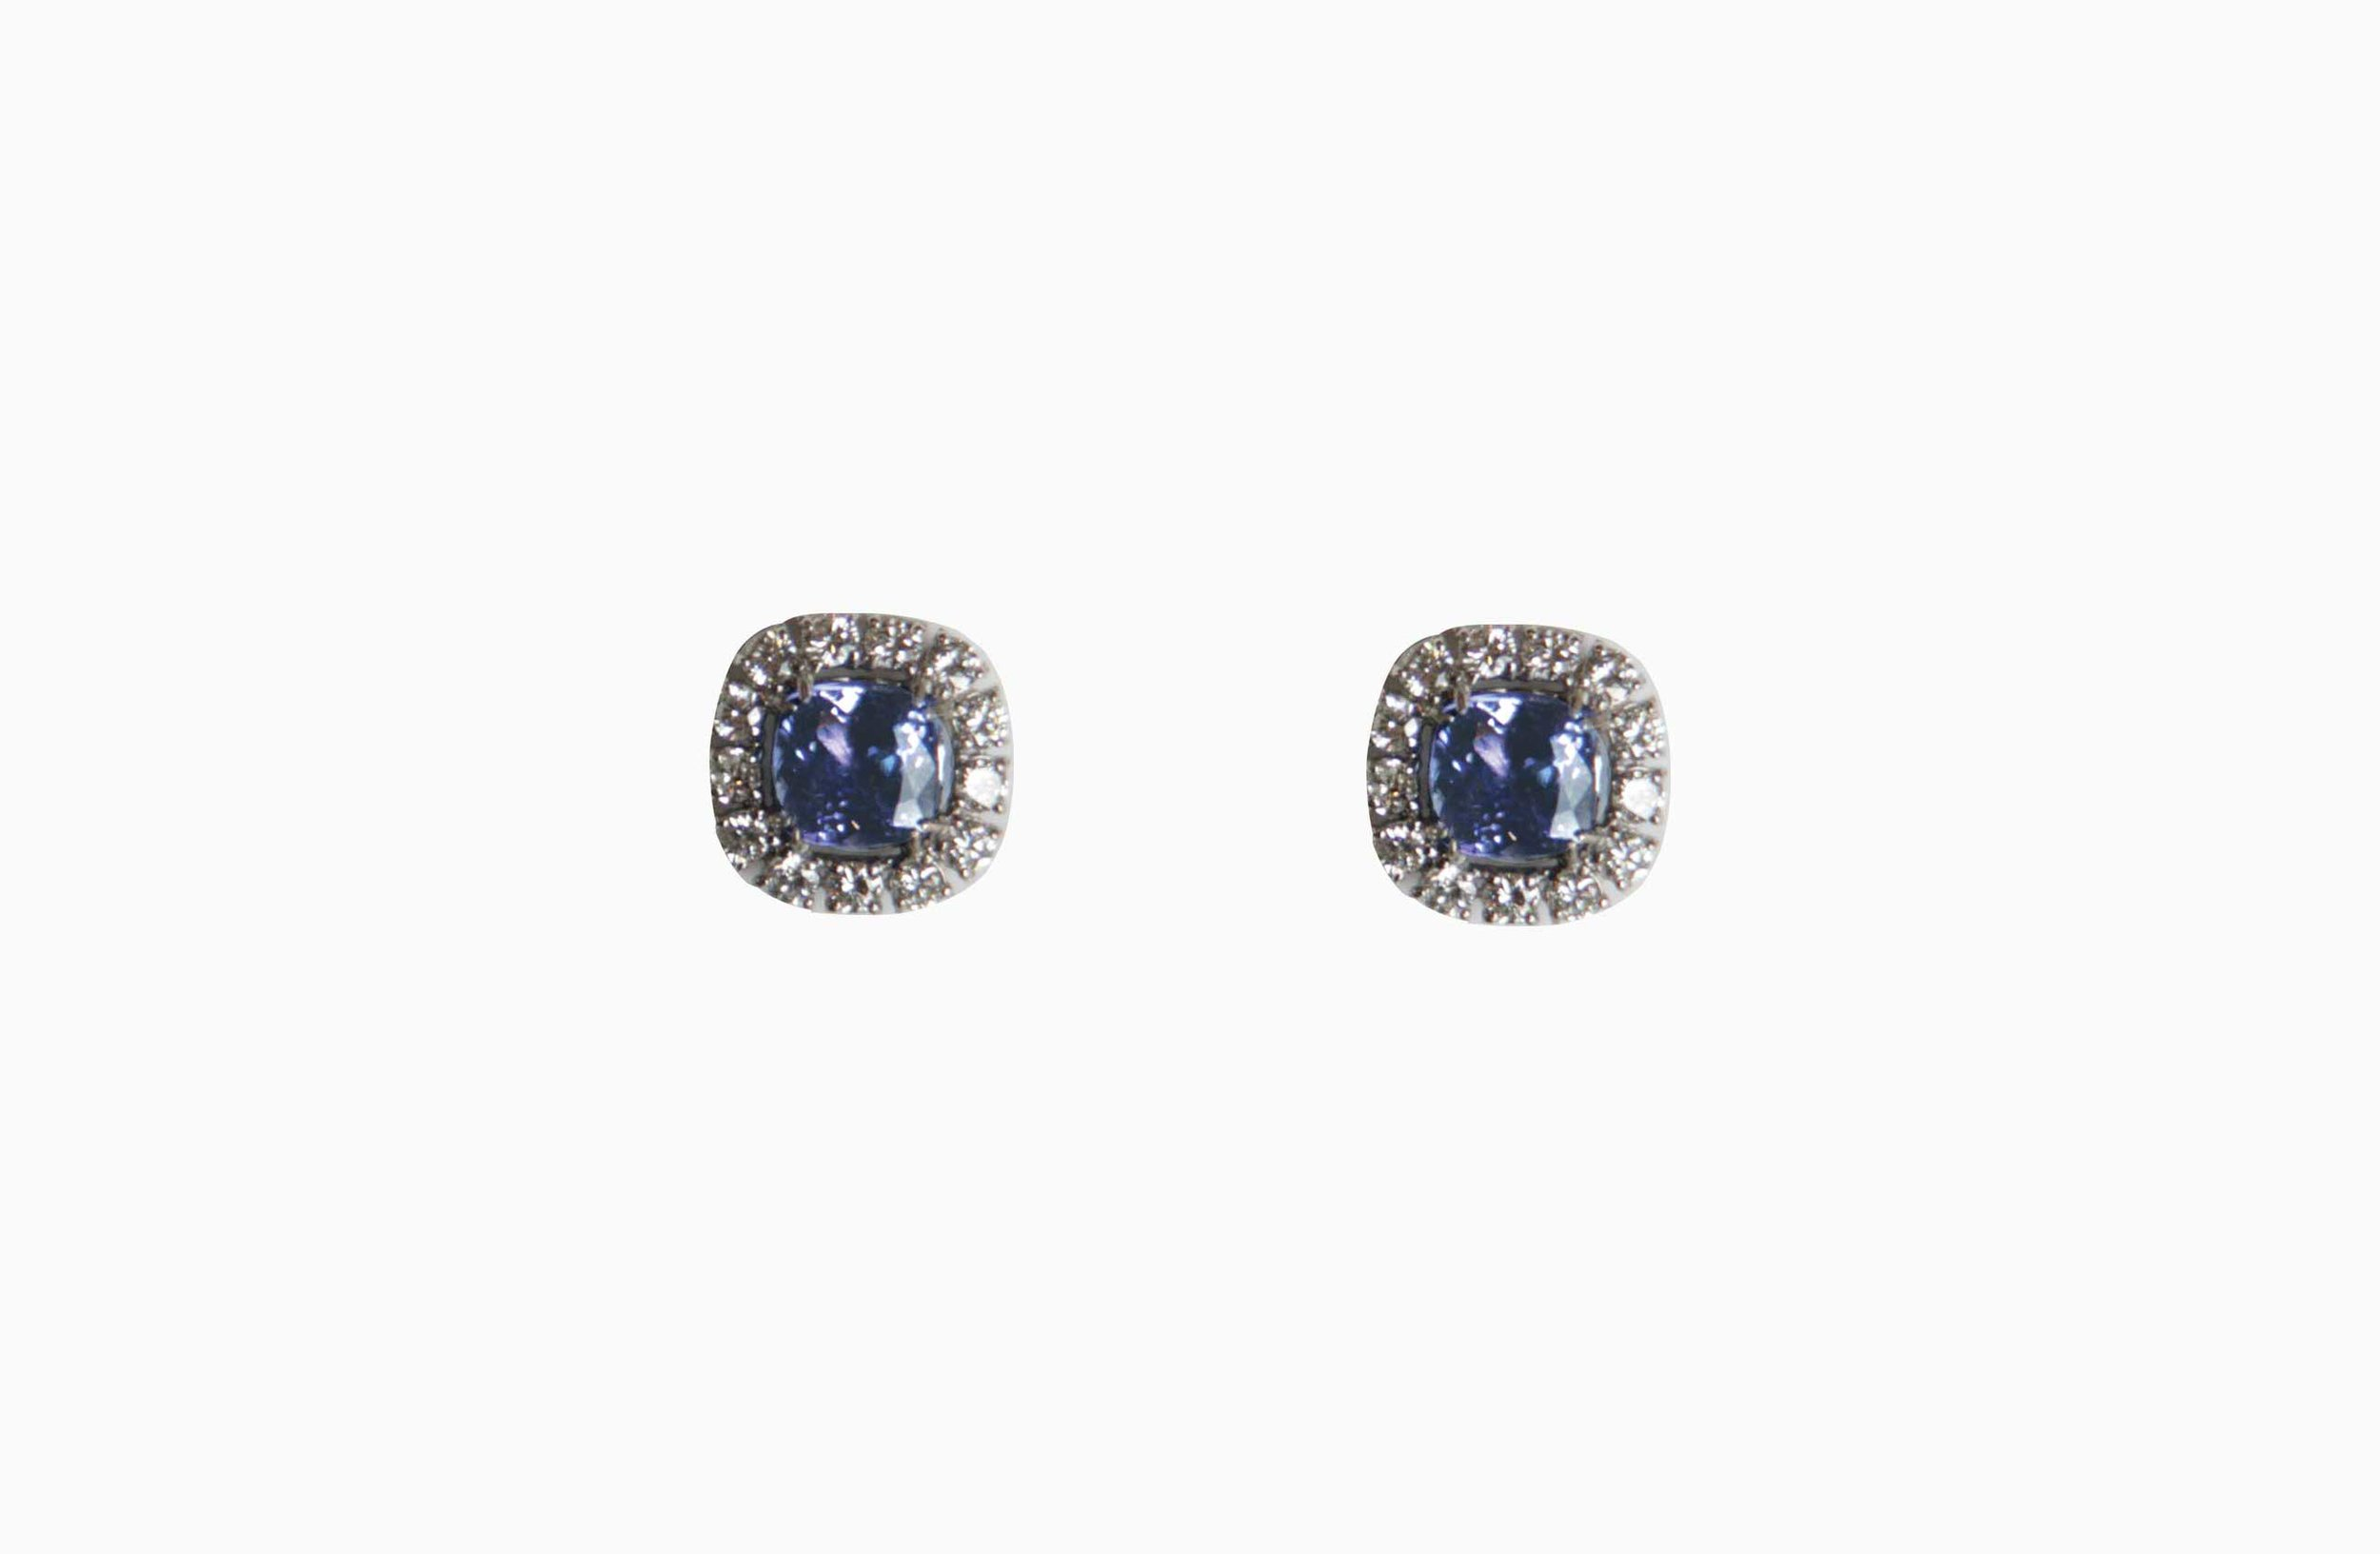 014-TanzaniteDiamondStuds-Earrings.jpg